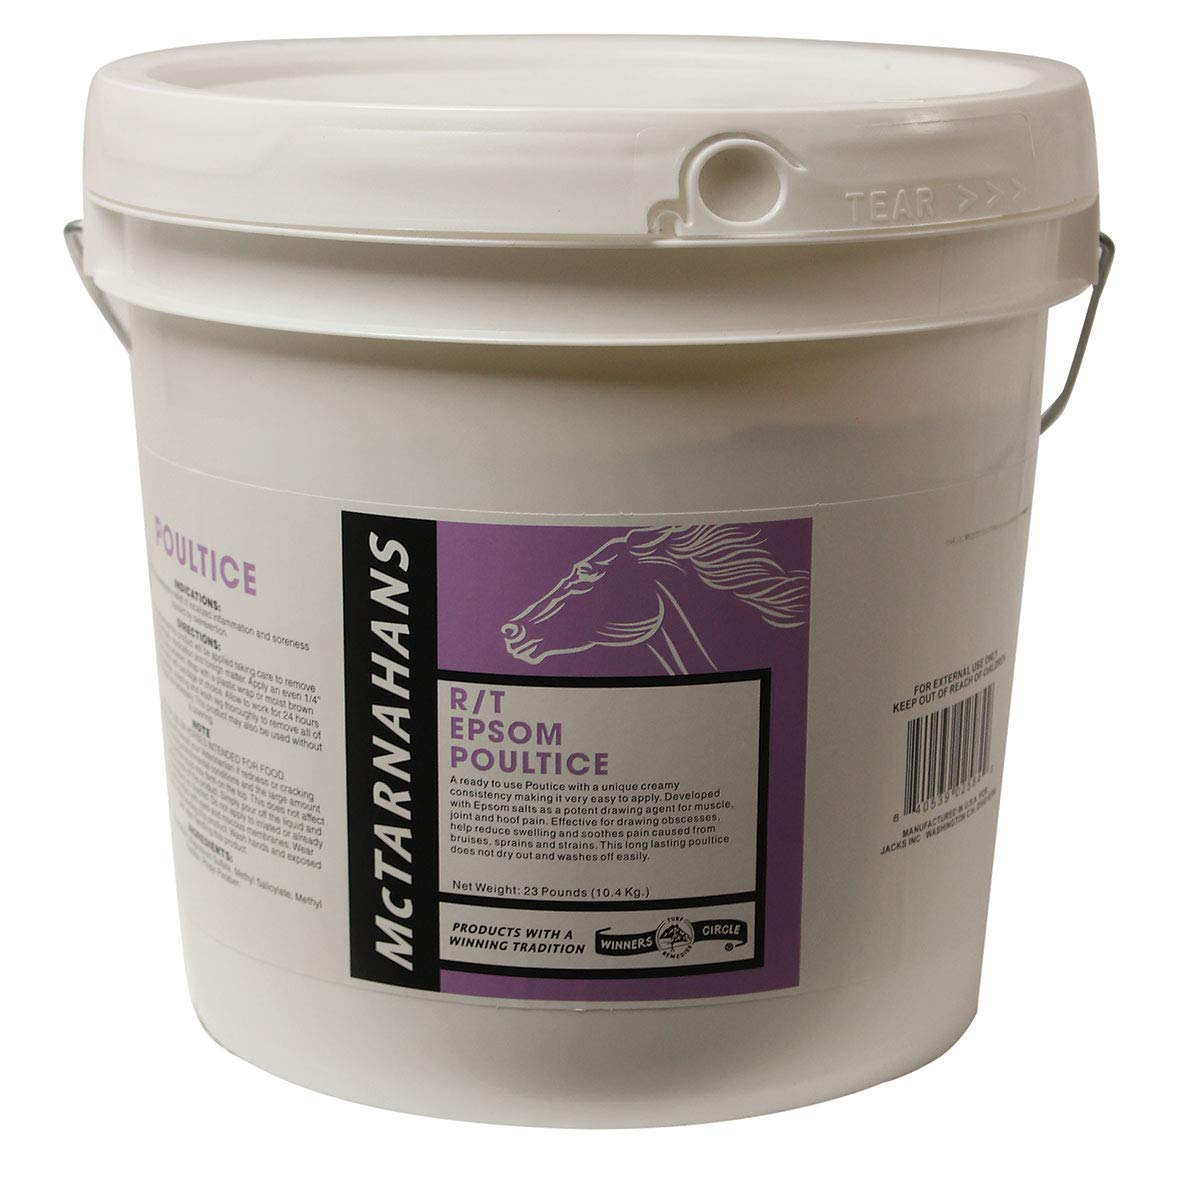 McTarnahans Epsom Poultice for Horses - 23 Pounds